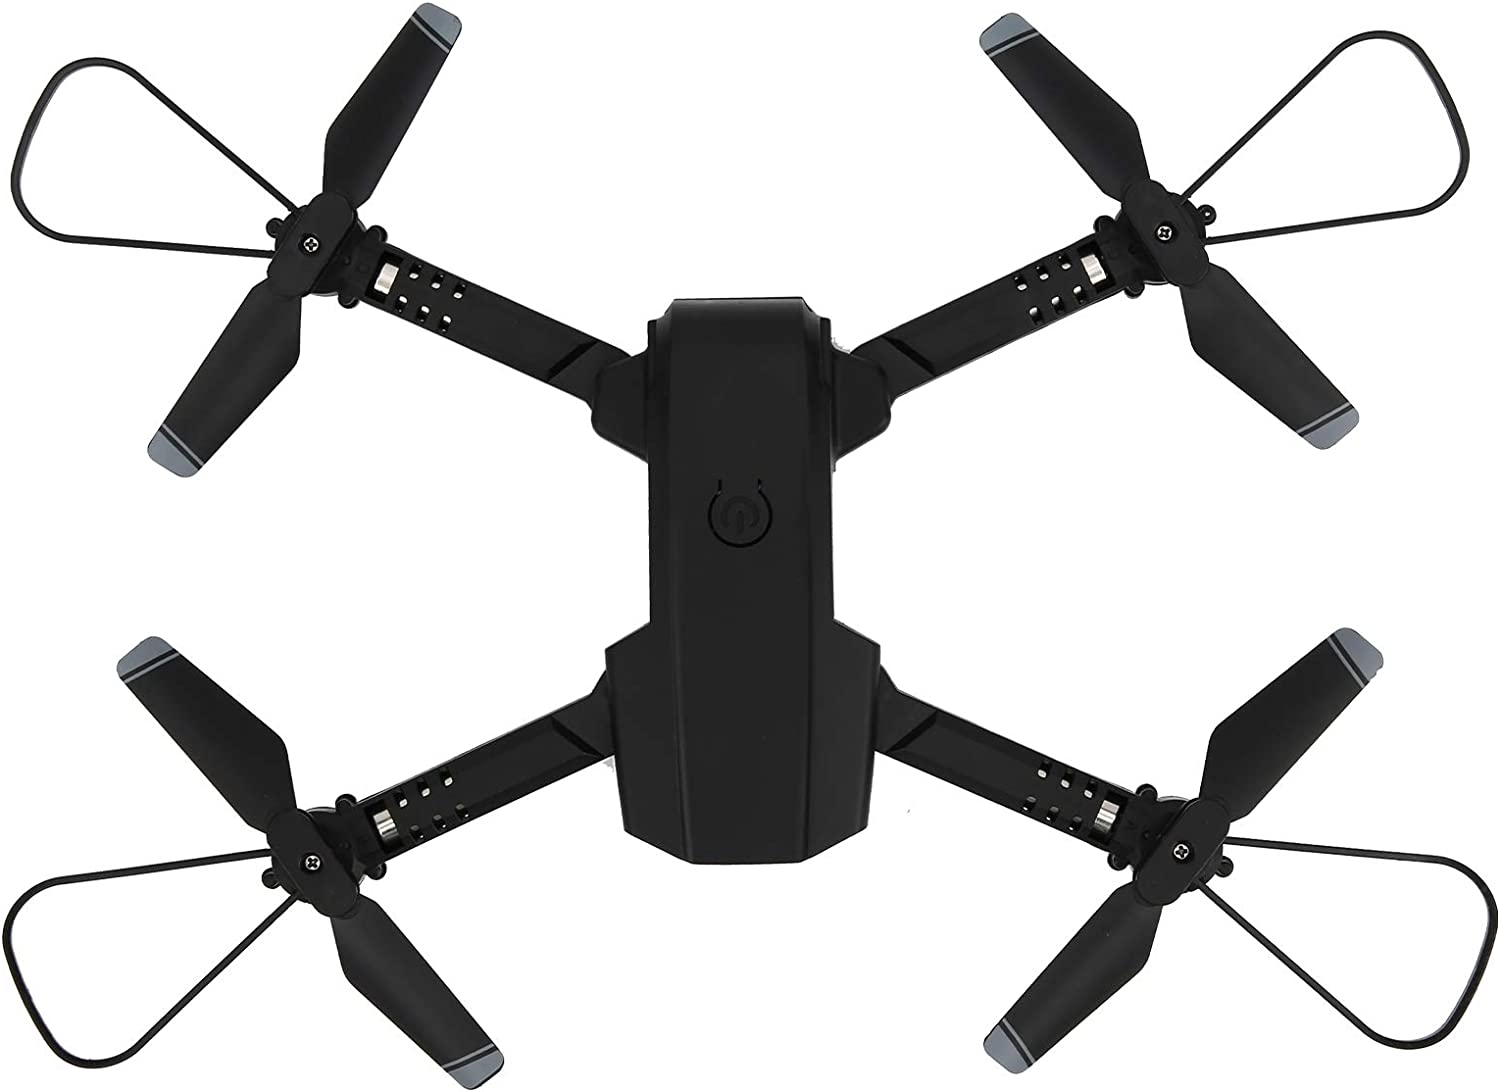 Home-table Mini Drone for Adults or Children,Portable RC Drone with Altitude Hold, 4K Aerial Photo, One-Key Automatic Return, Fixed Height Quadrotor Equipment Black